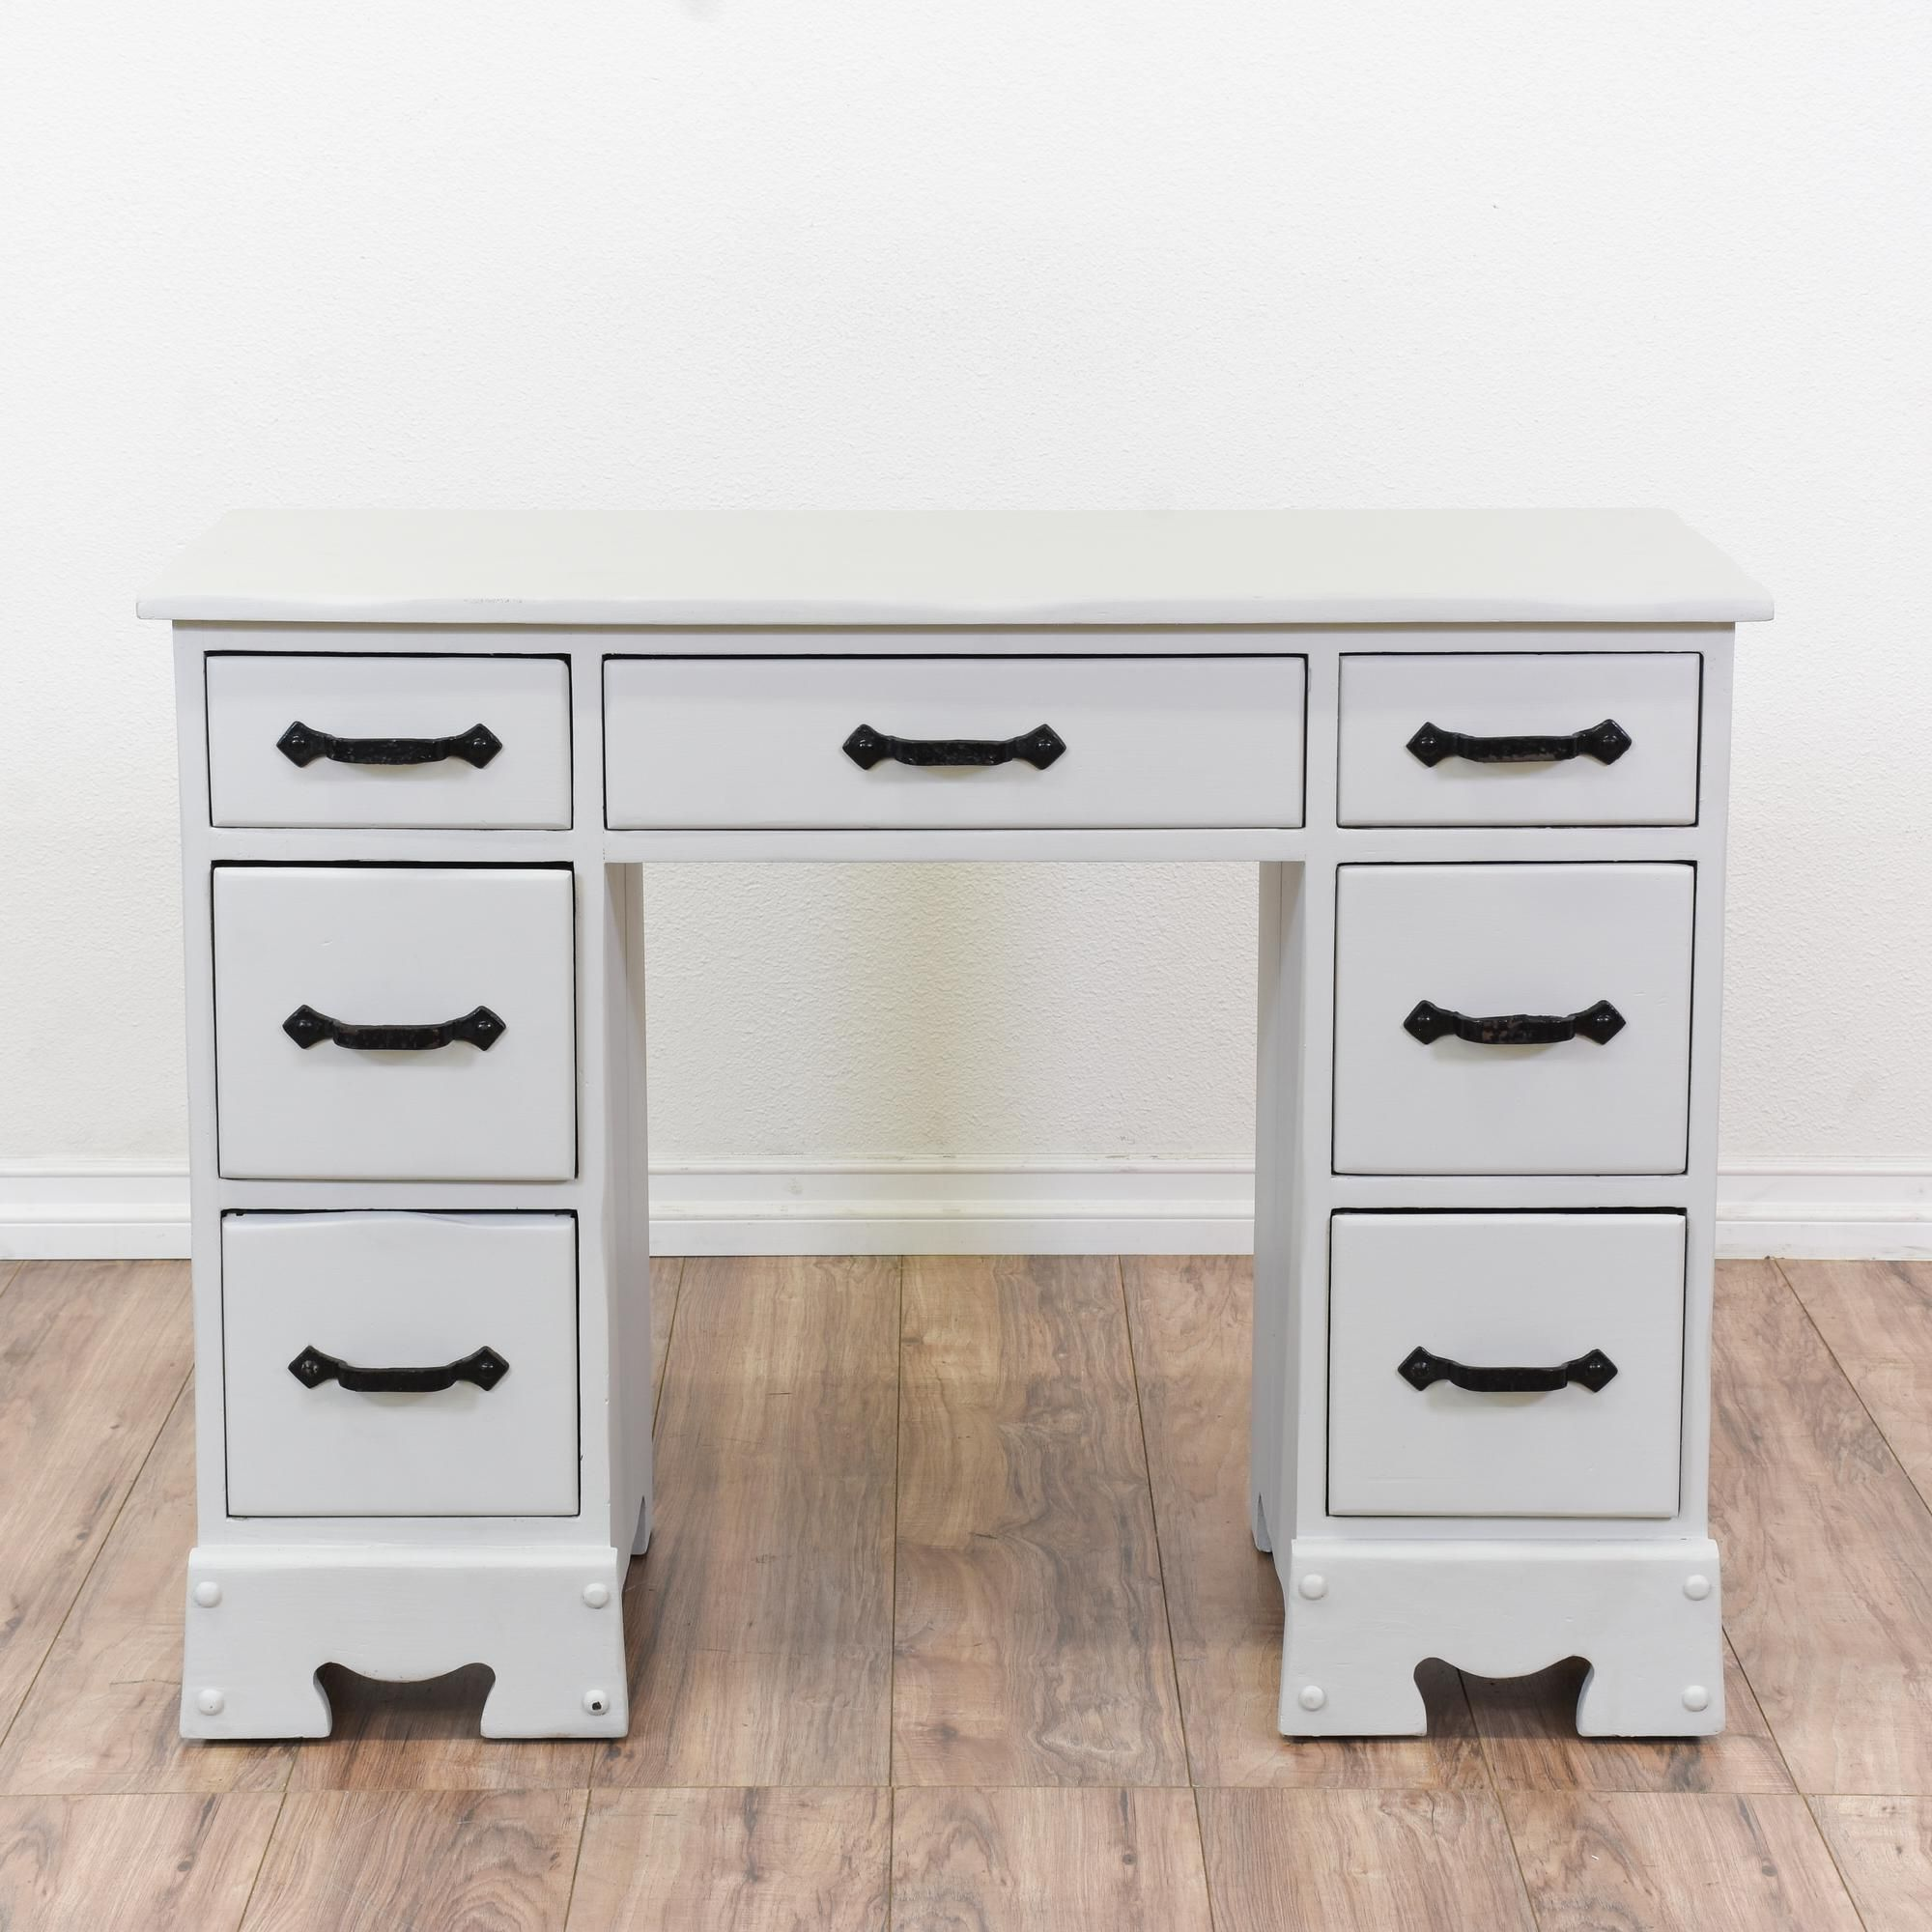 This Kneehole Desk Is Featured In A Solid Wood With Fresh White Coat Of Paint Vanity Great Condition 7 Drawers Black Iron Like